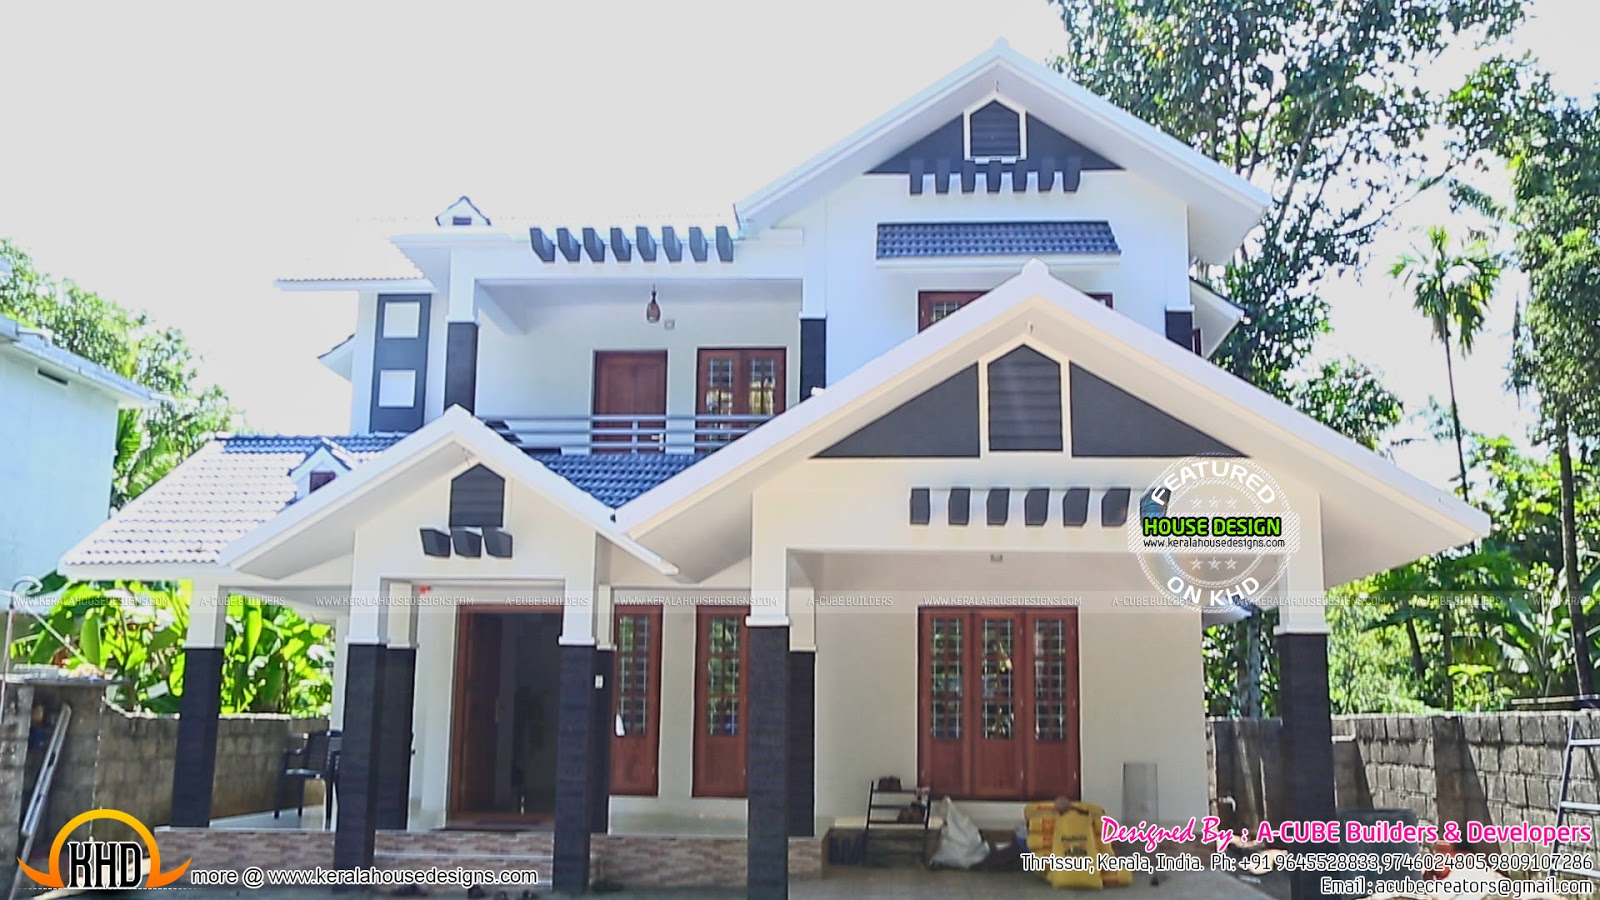 New house plans for 2016 starts here kerala home design for New home construction designs